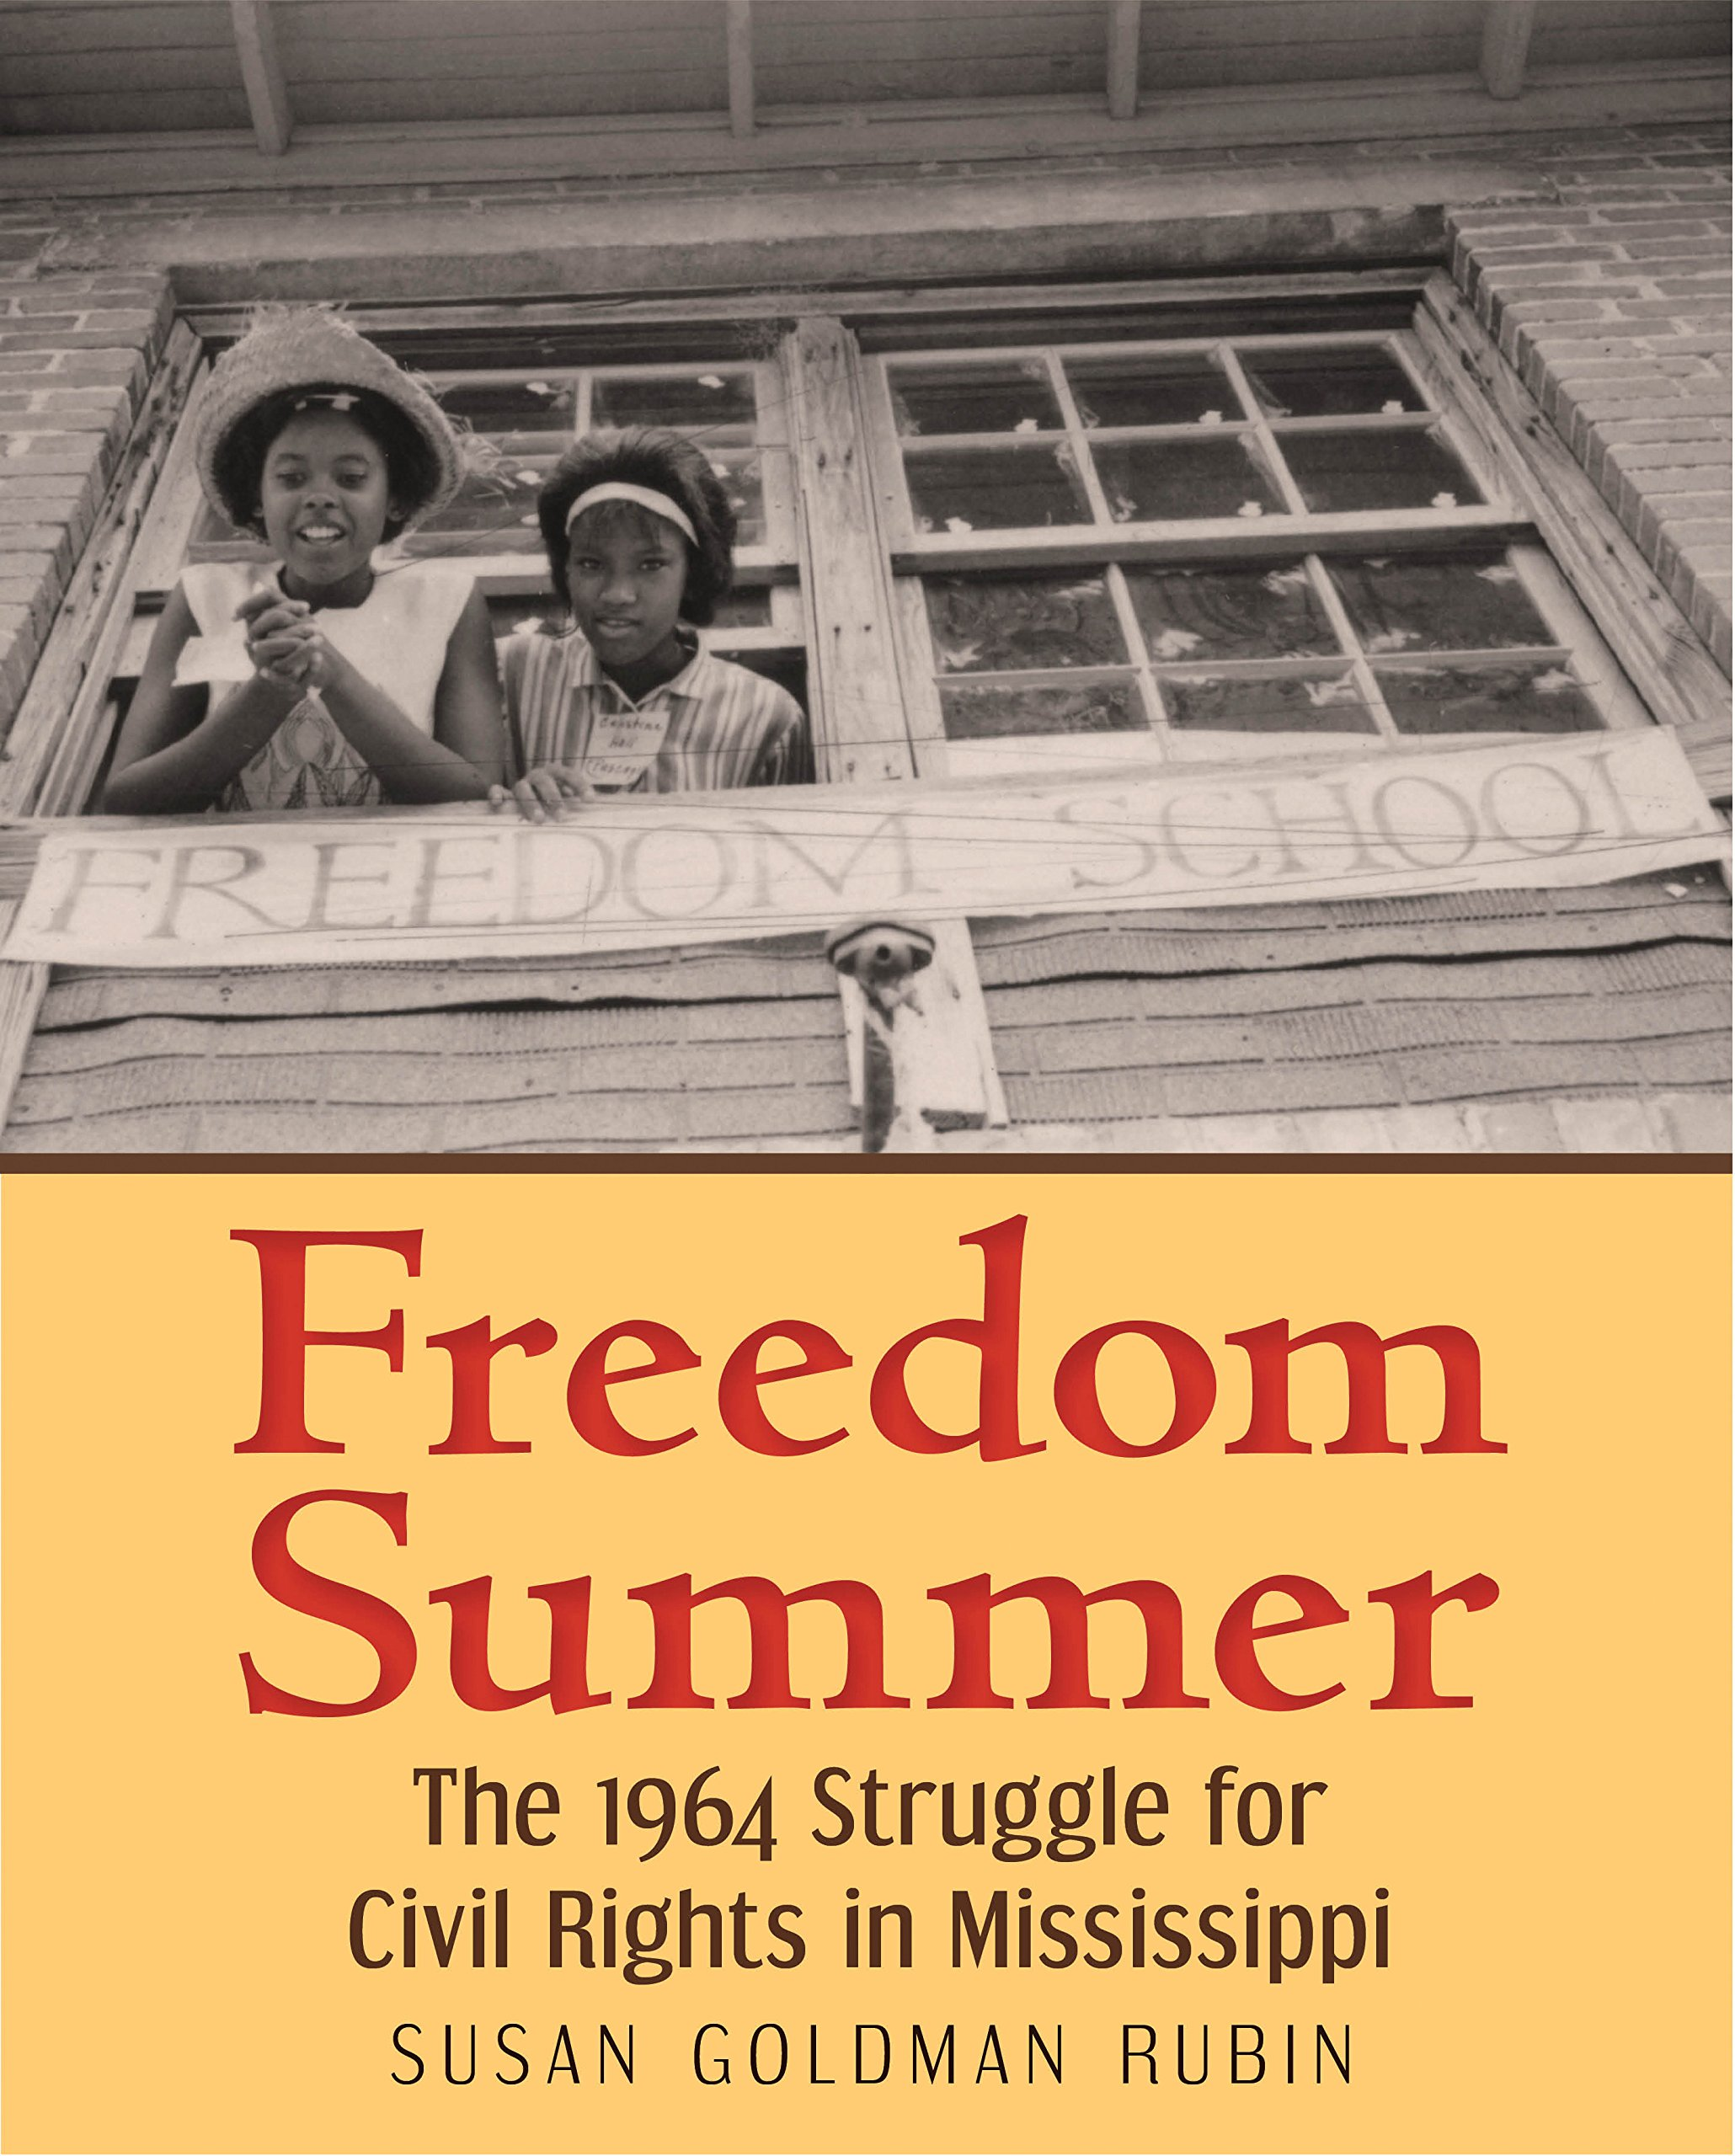 Freedom Summer: The 1964 Struggle for Civil Rights in Mississippi PDF